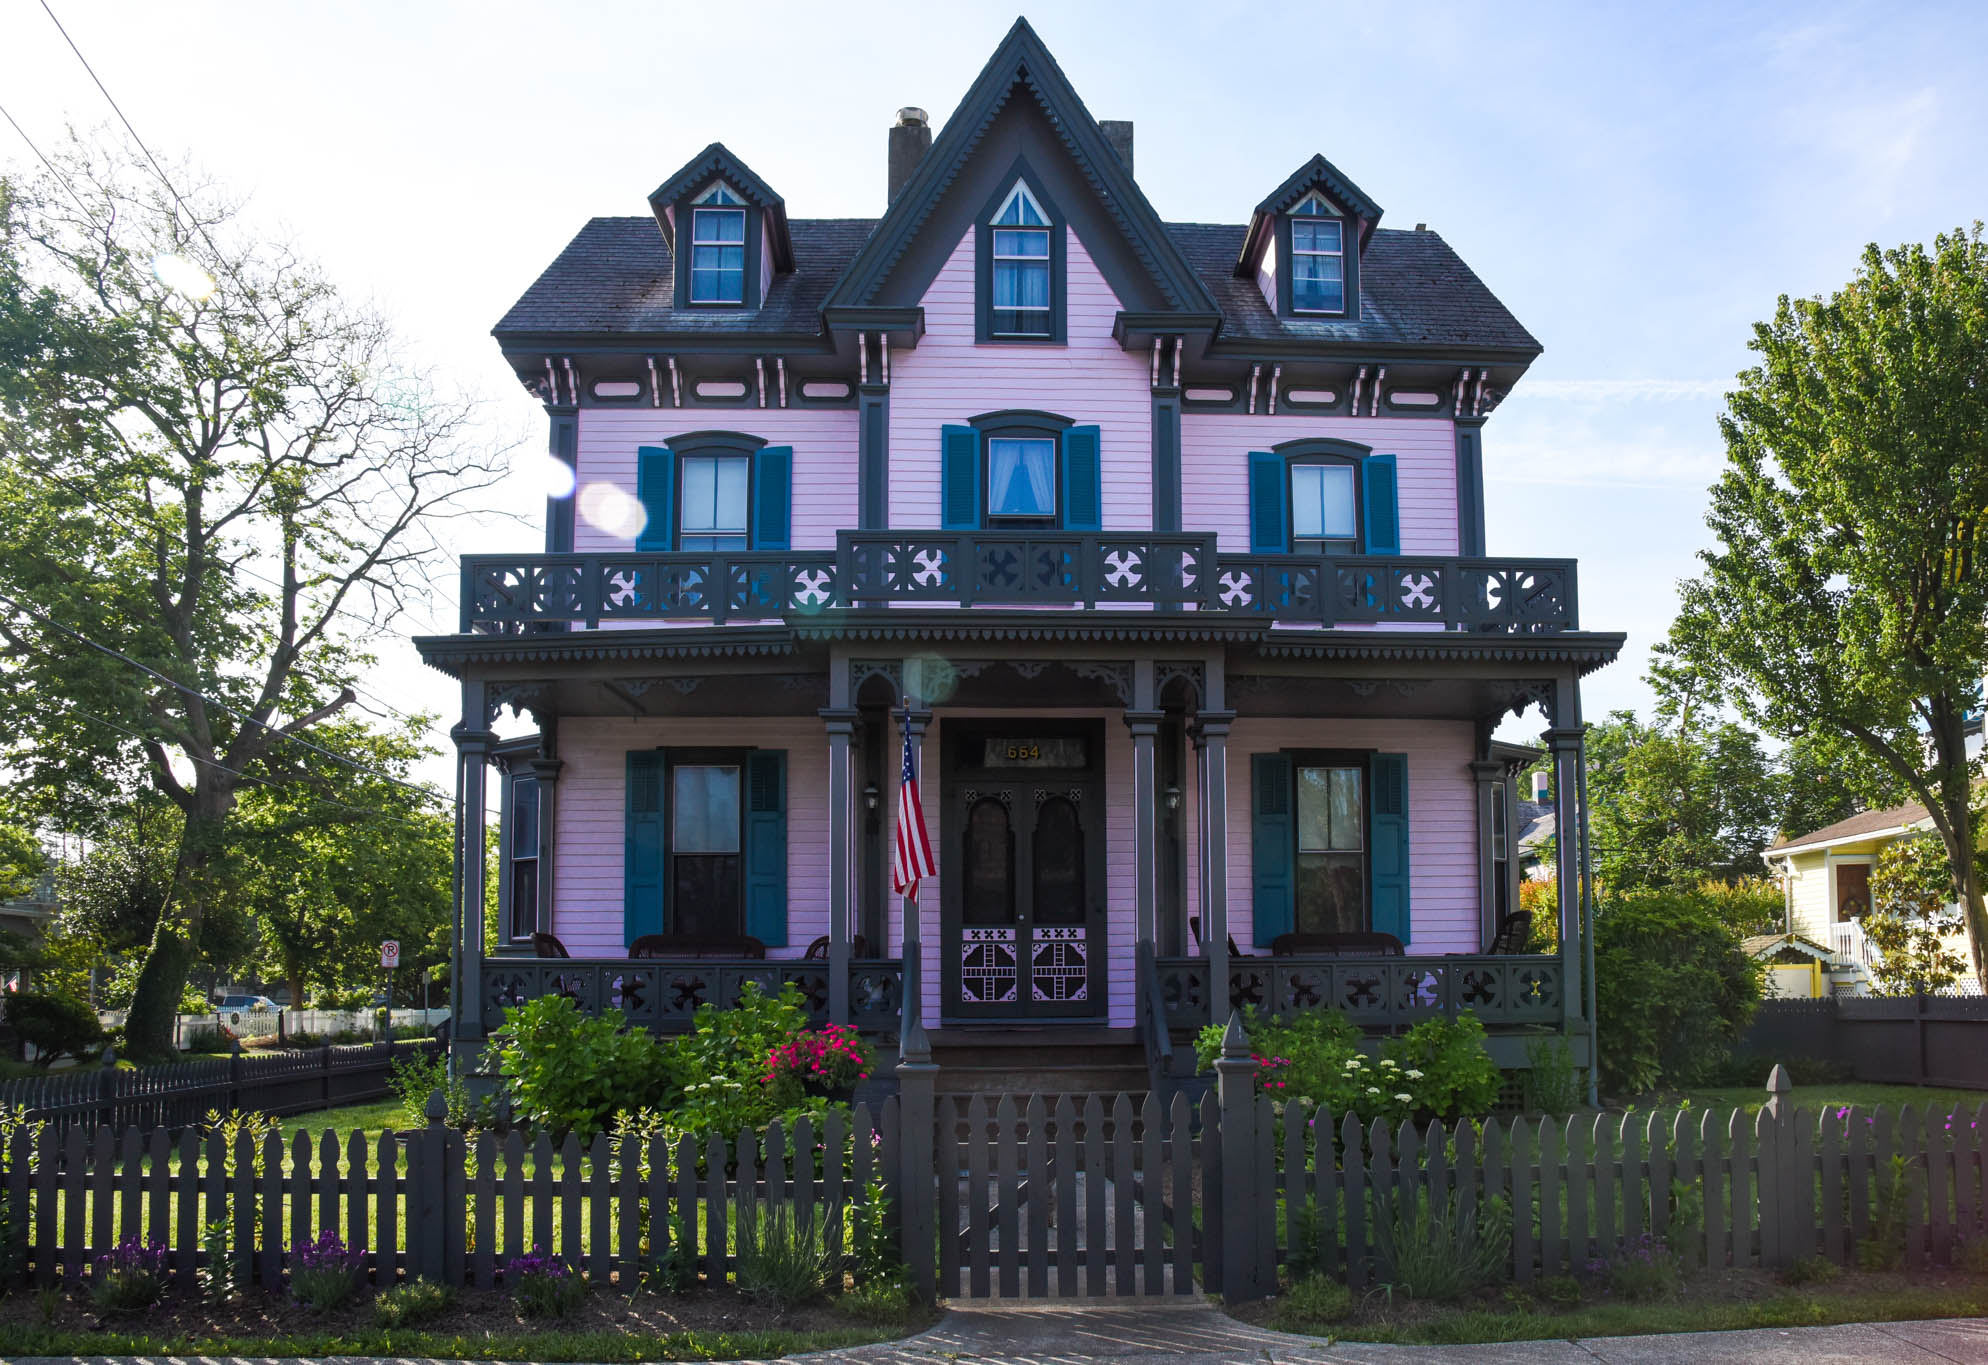 A Victorian house on the corner of Franklin and Hughes.